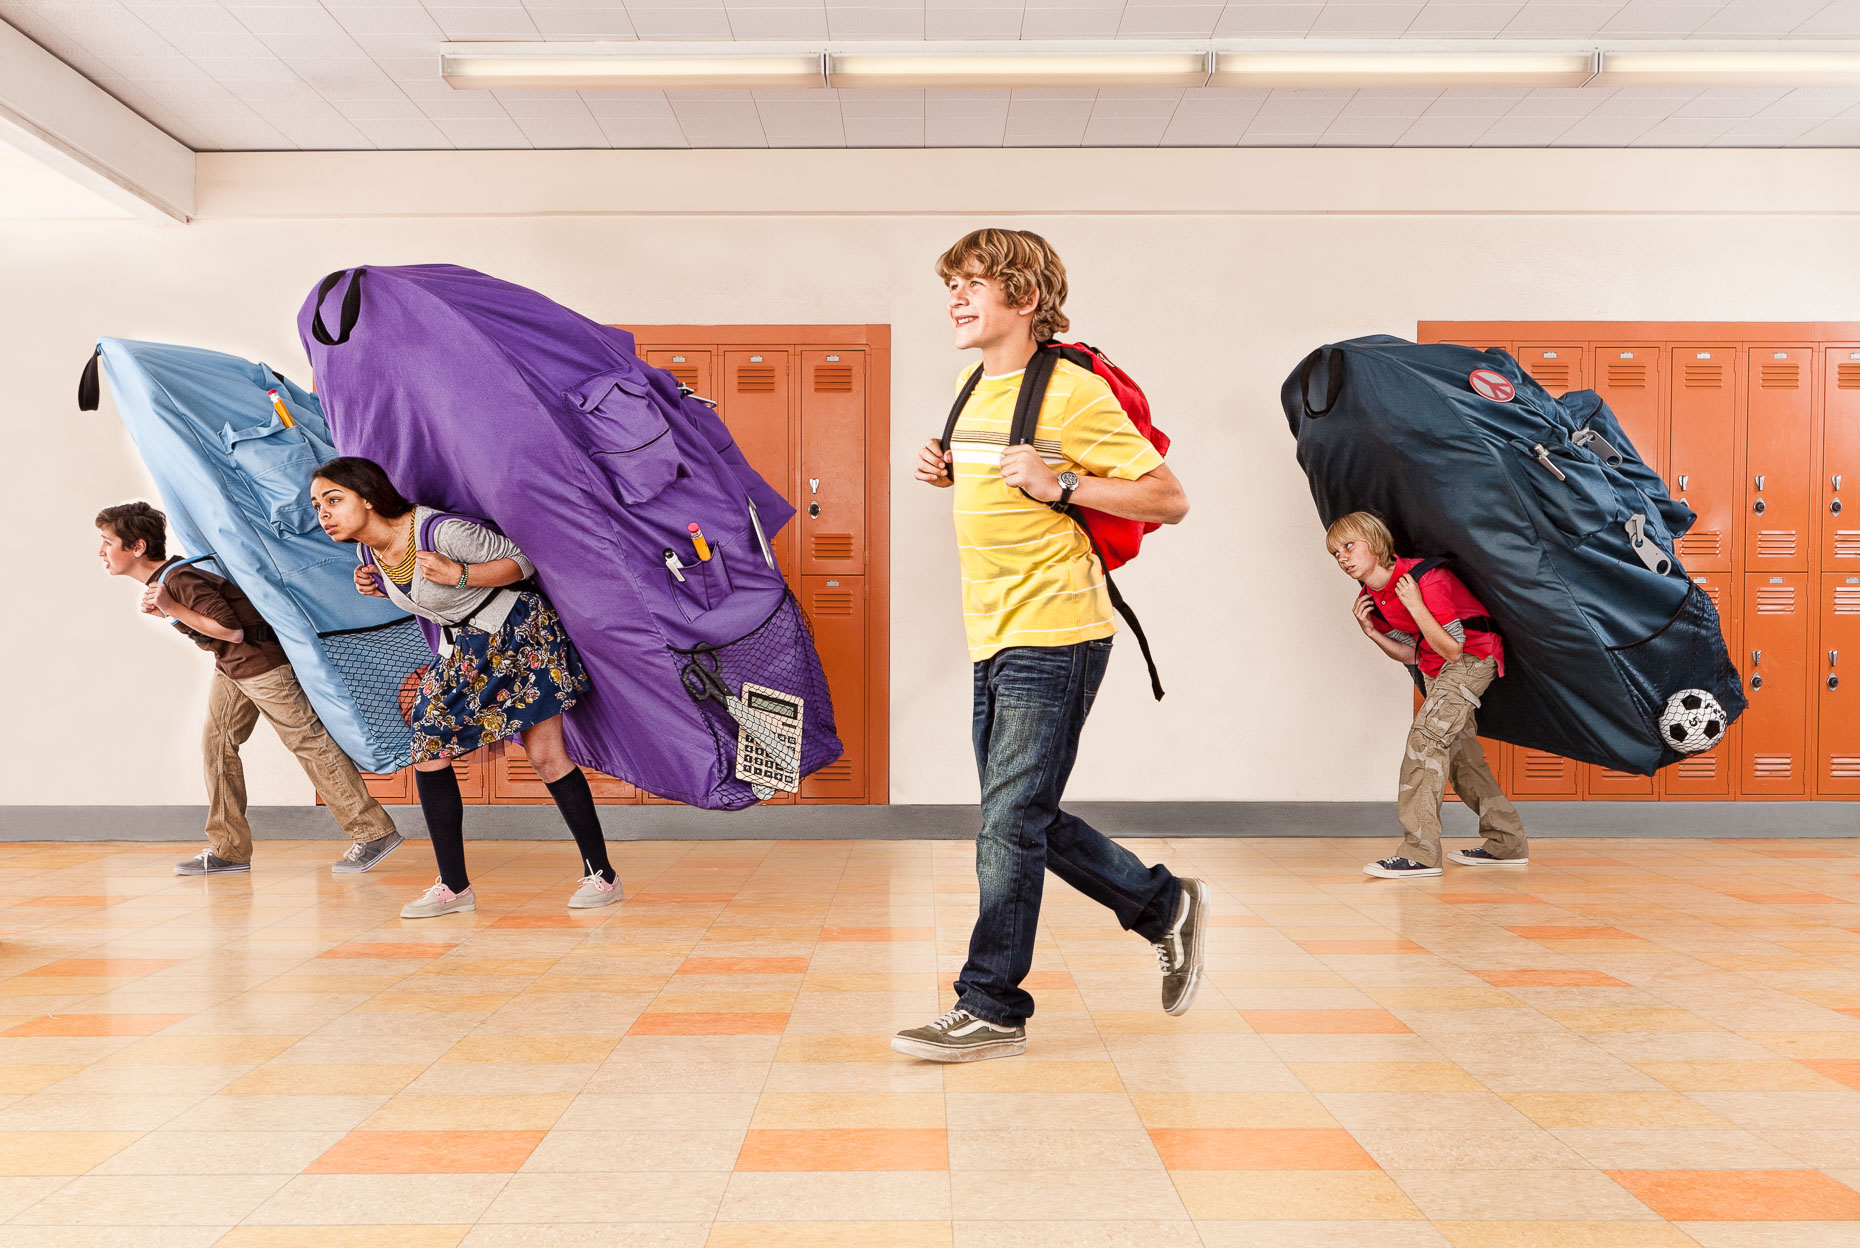 Boy walking in school hallway with backpack, other kids have very large backpacks. David Zaitz.